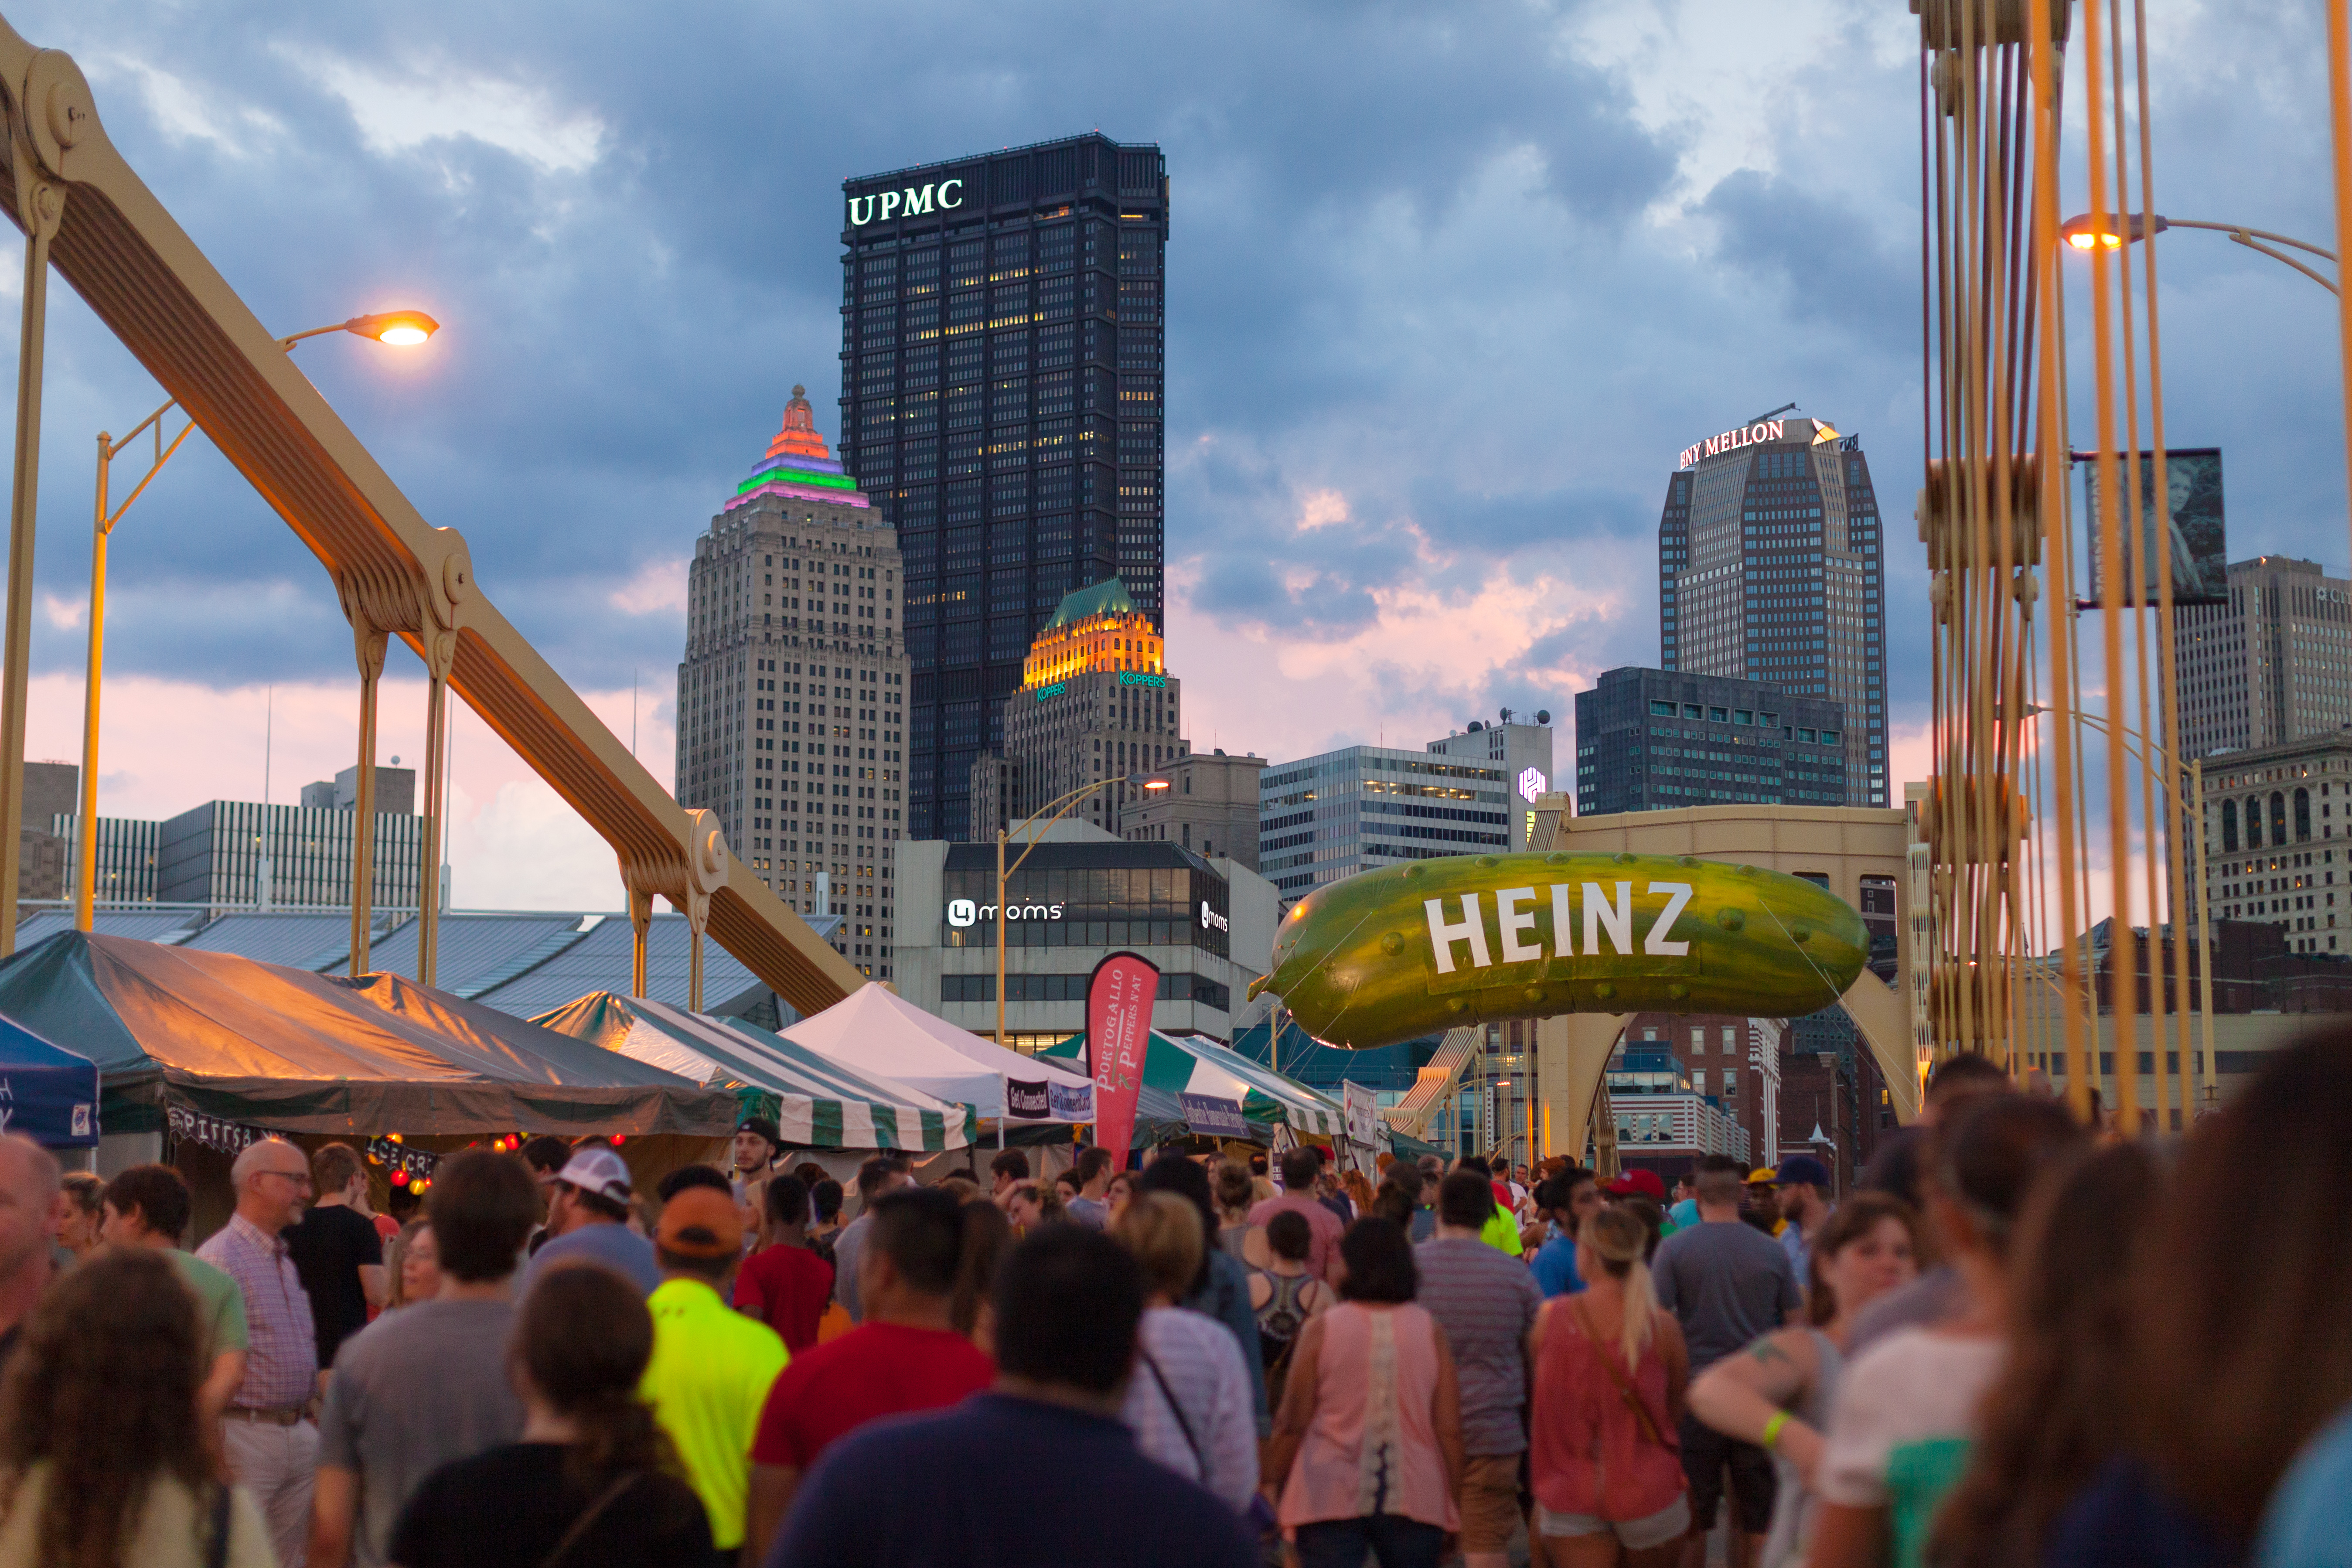 A Picklesburgh (Festival) sunset. This year's festival is July 26-28. (photo: Renee Rosensteel for the Pittsburgh Downtown Partnership)